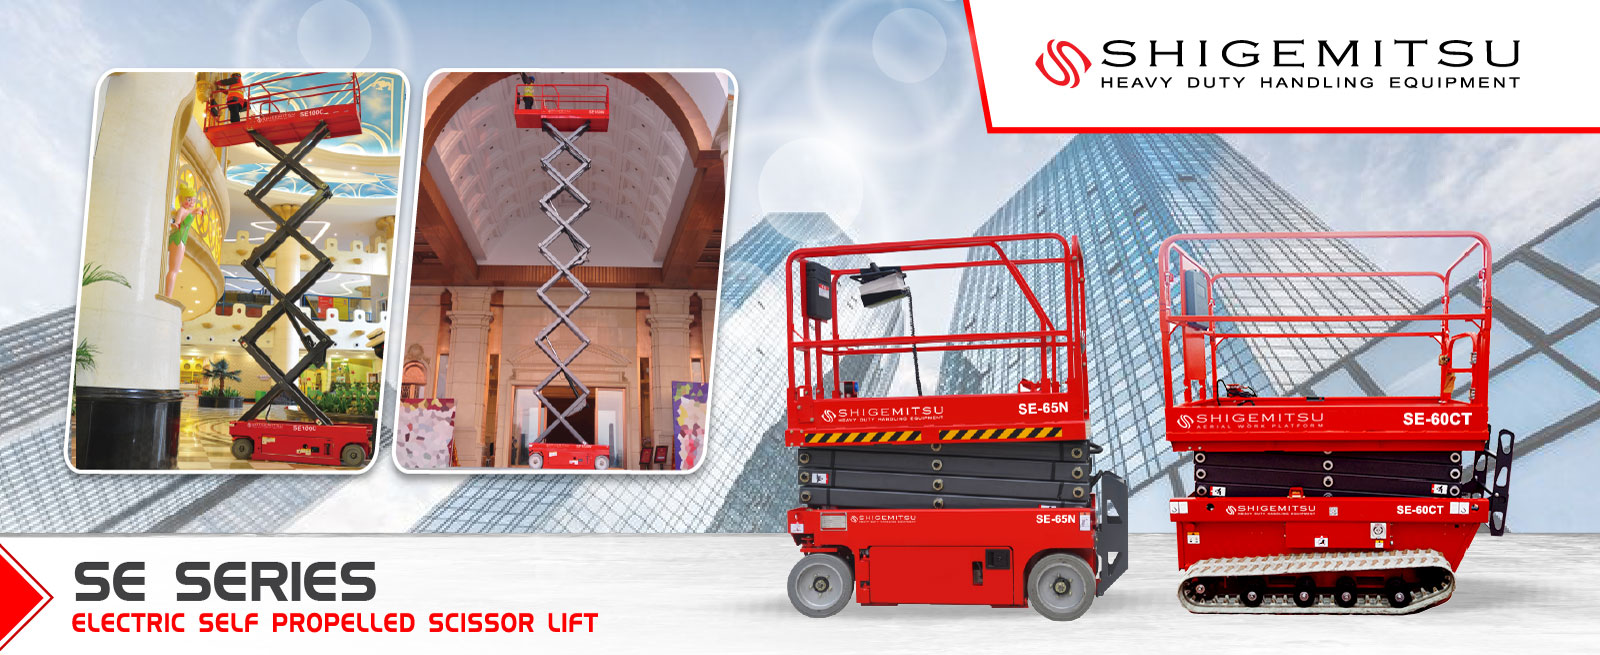 Shigemitsu Electric Self-Propelled Scissor Lift